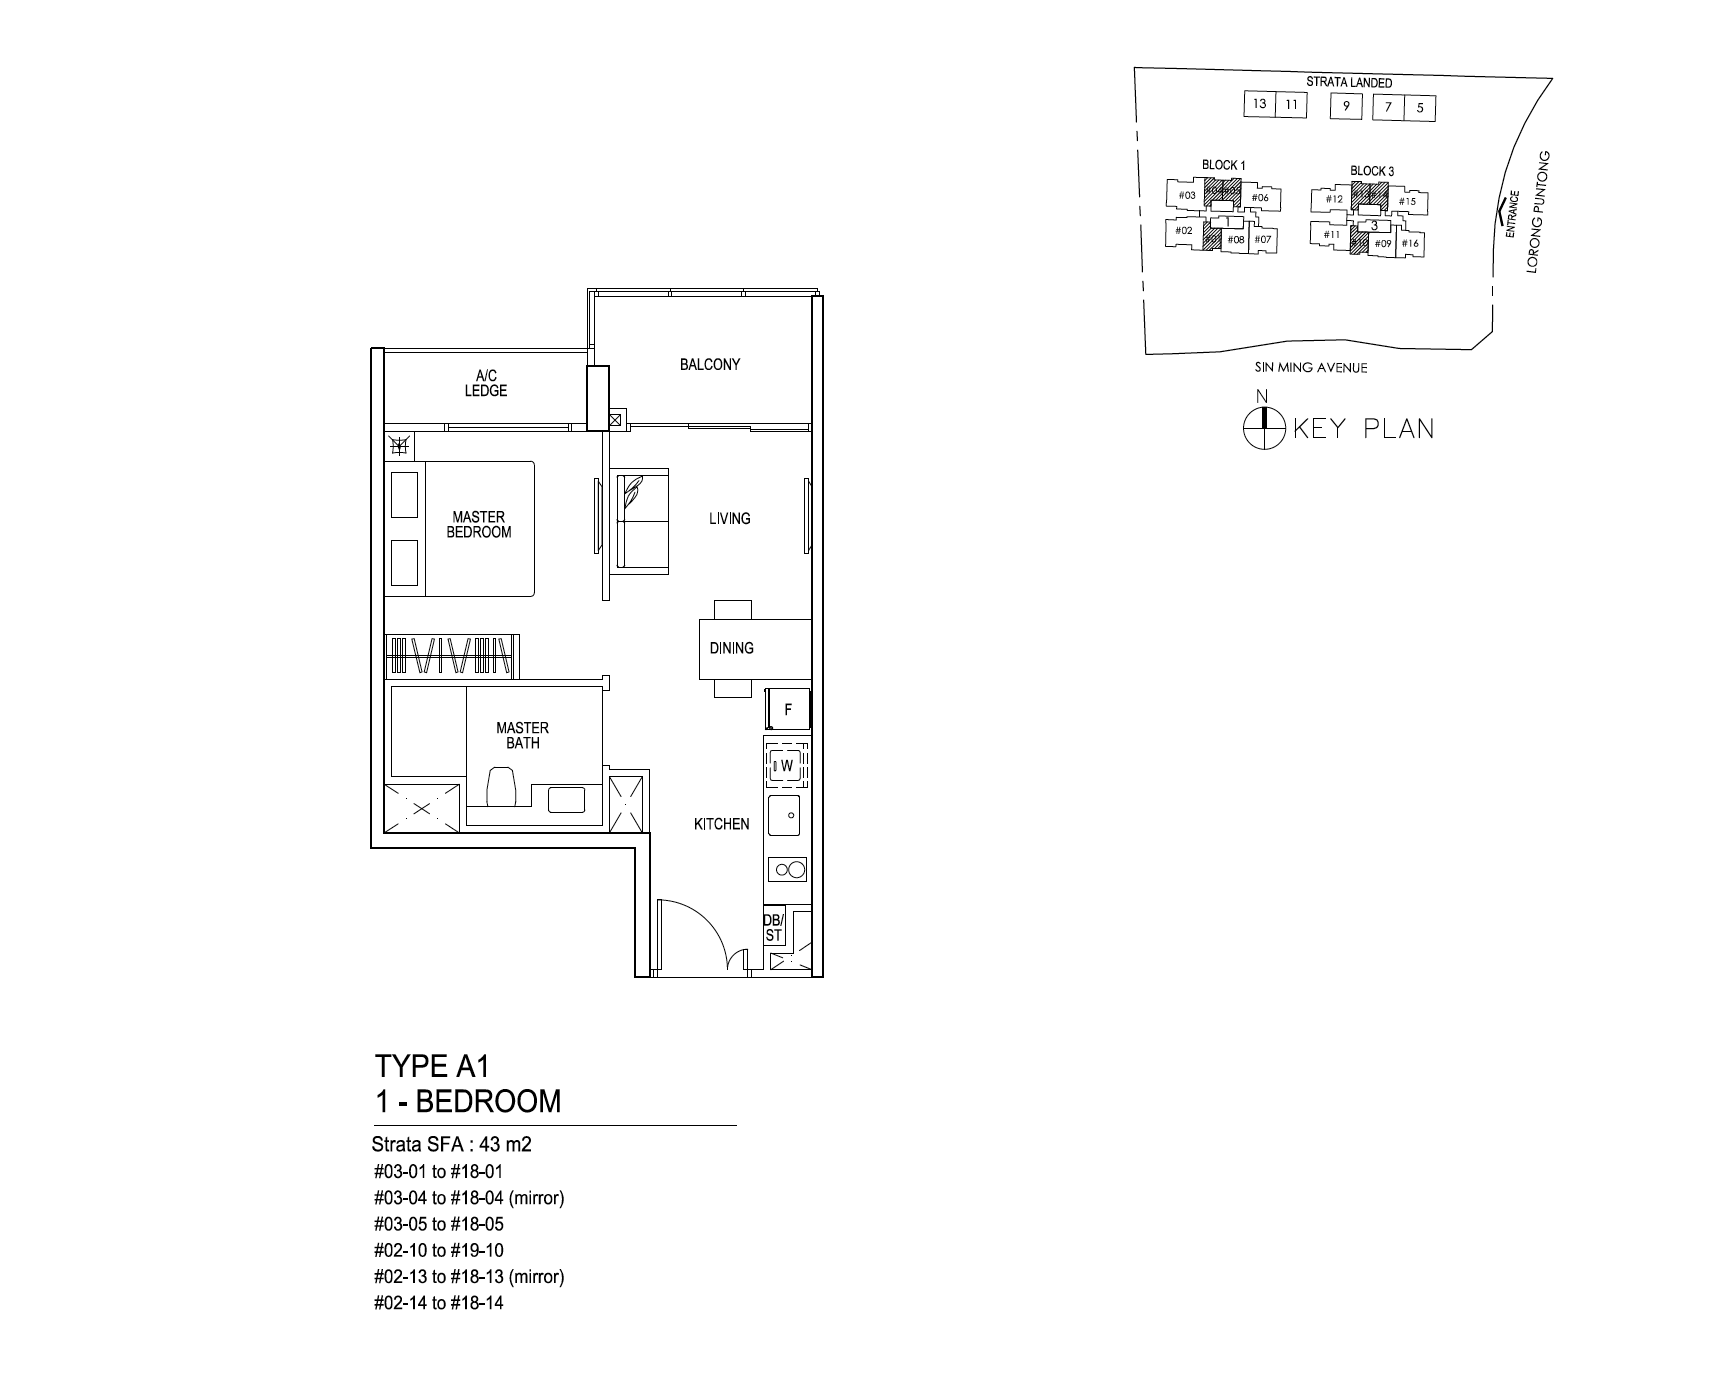 Thomson Impressions 1 bedroom floor plan